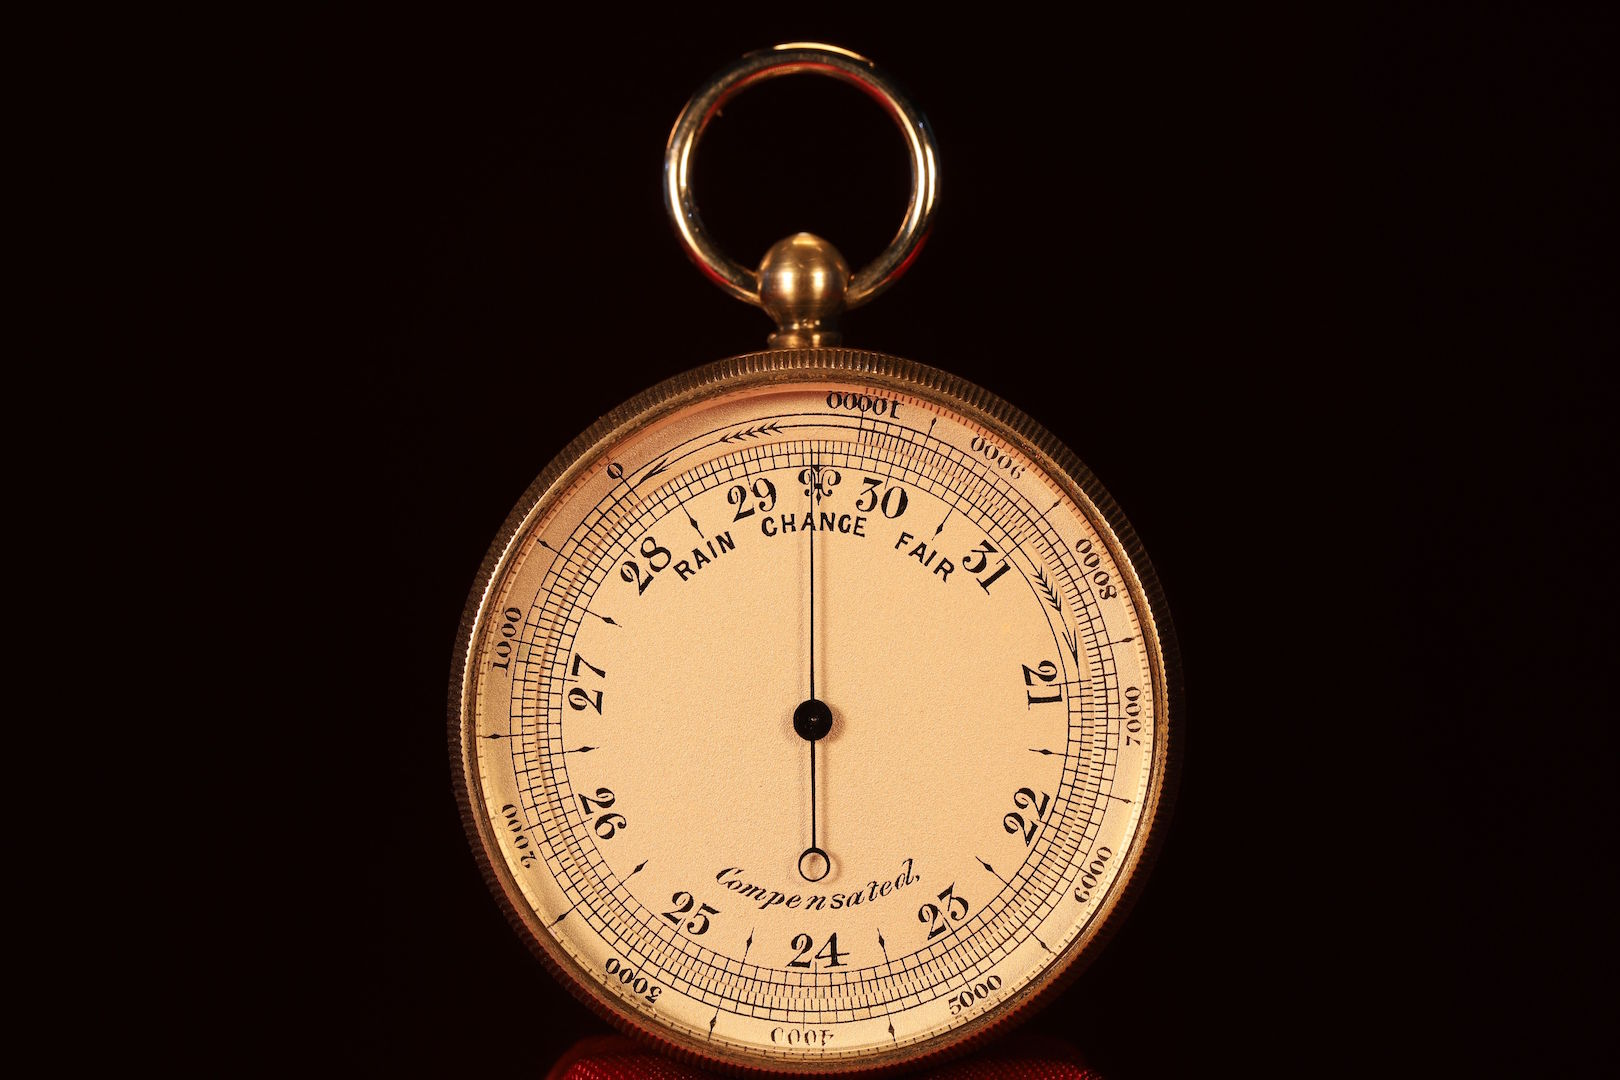 Image of Nickel Brass Pocket Barometer Altimeter Compass Compendium c1880